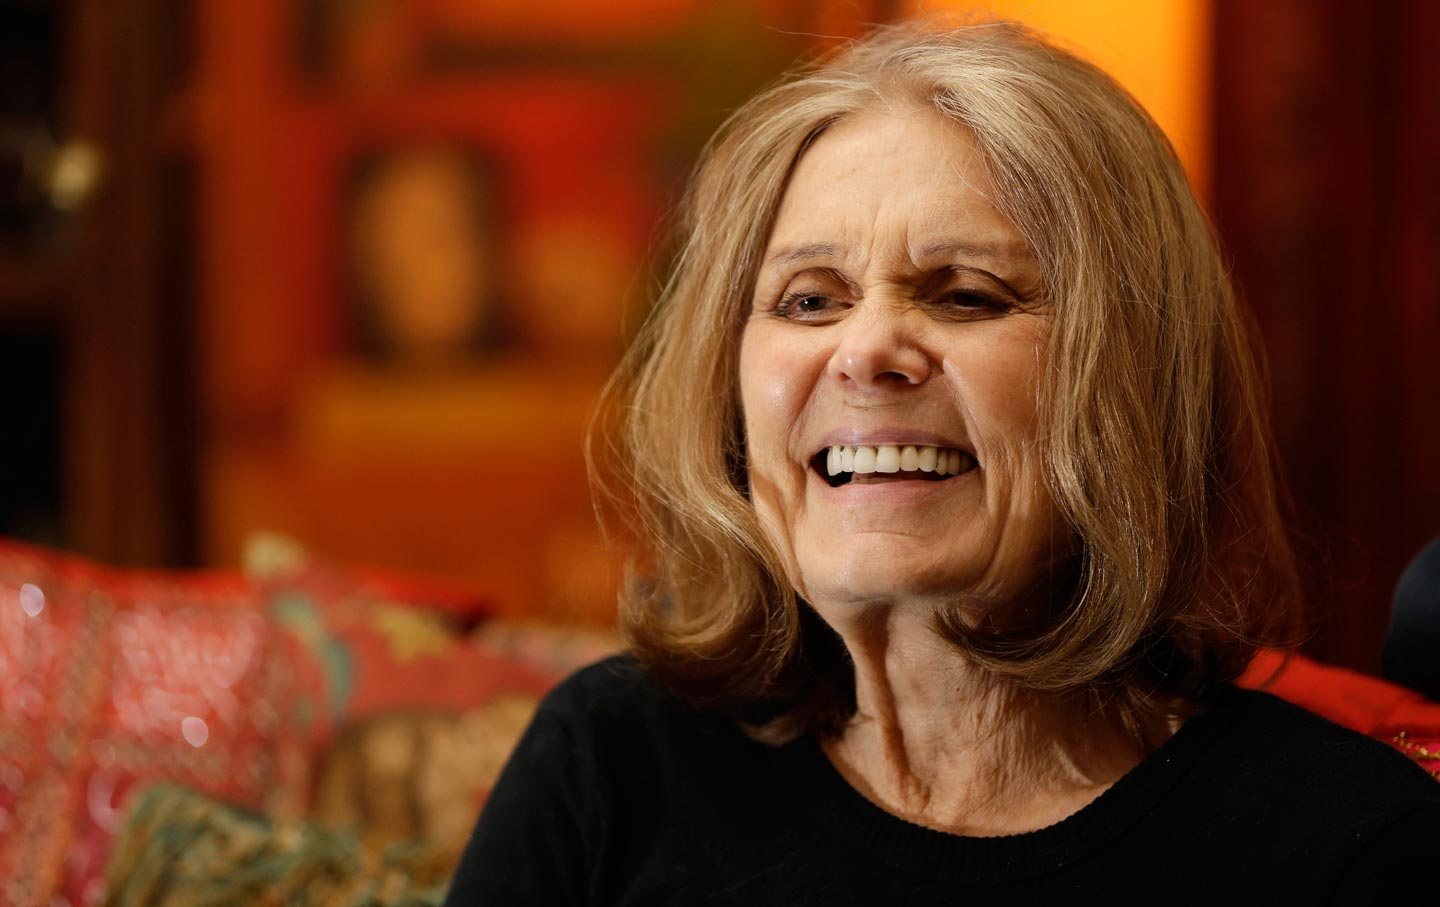 Gloria steinem at her home in new york in 2015 ap photo seth wenig